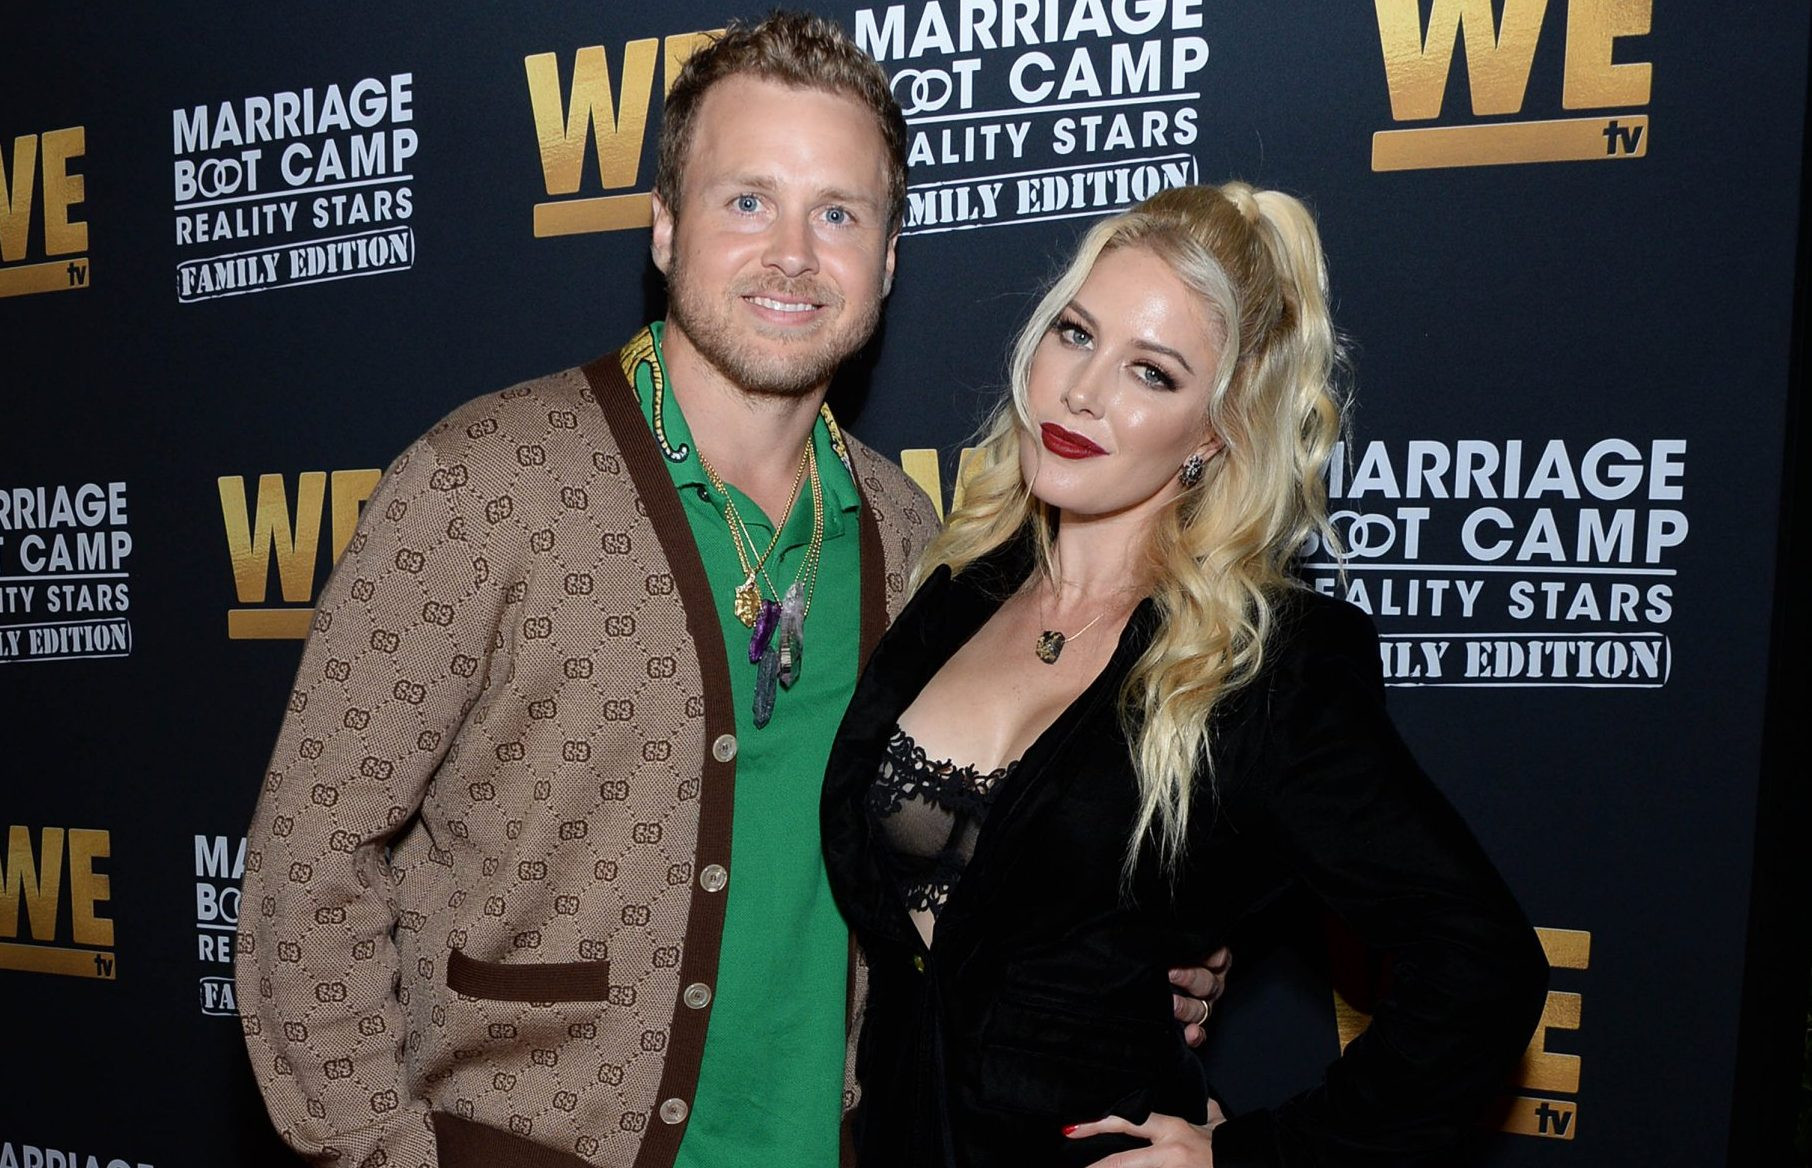 The Hills' Heidi Montag undergoes surgery in hopes of conceiving second child with husband Spencer Pratt